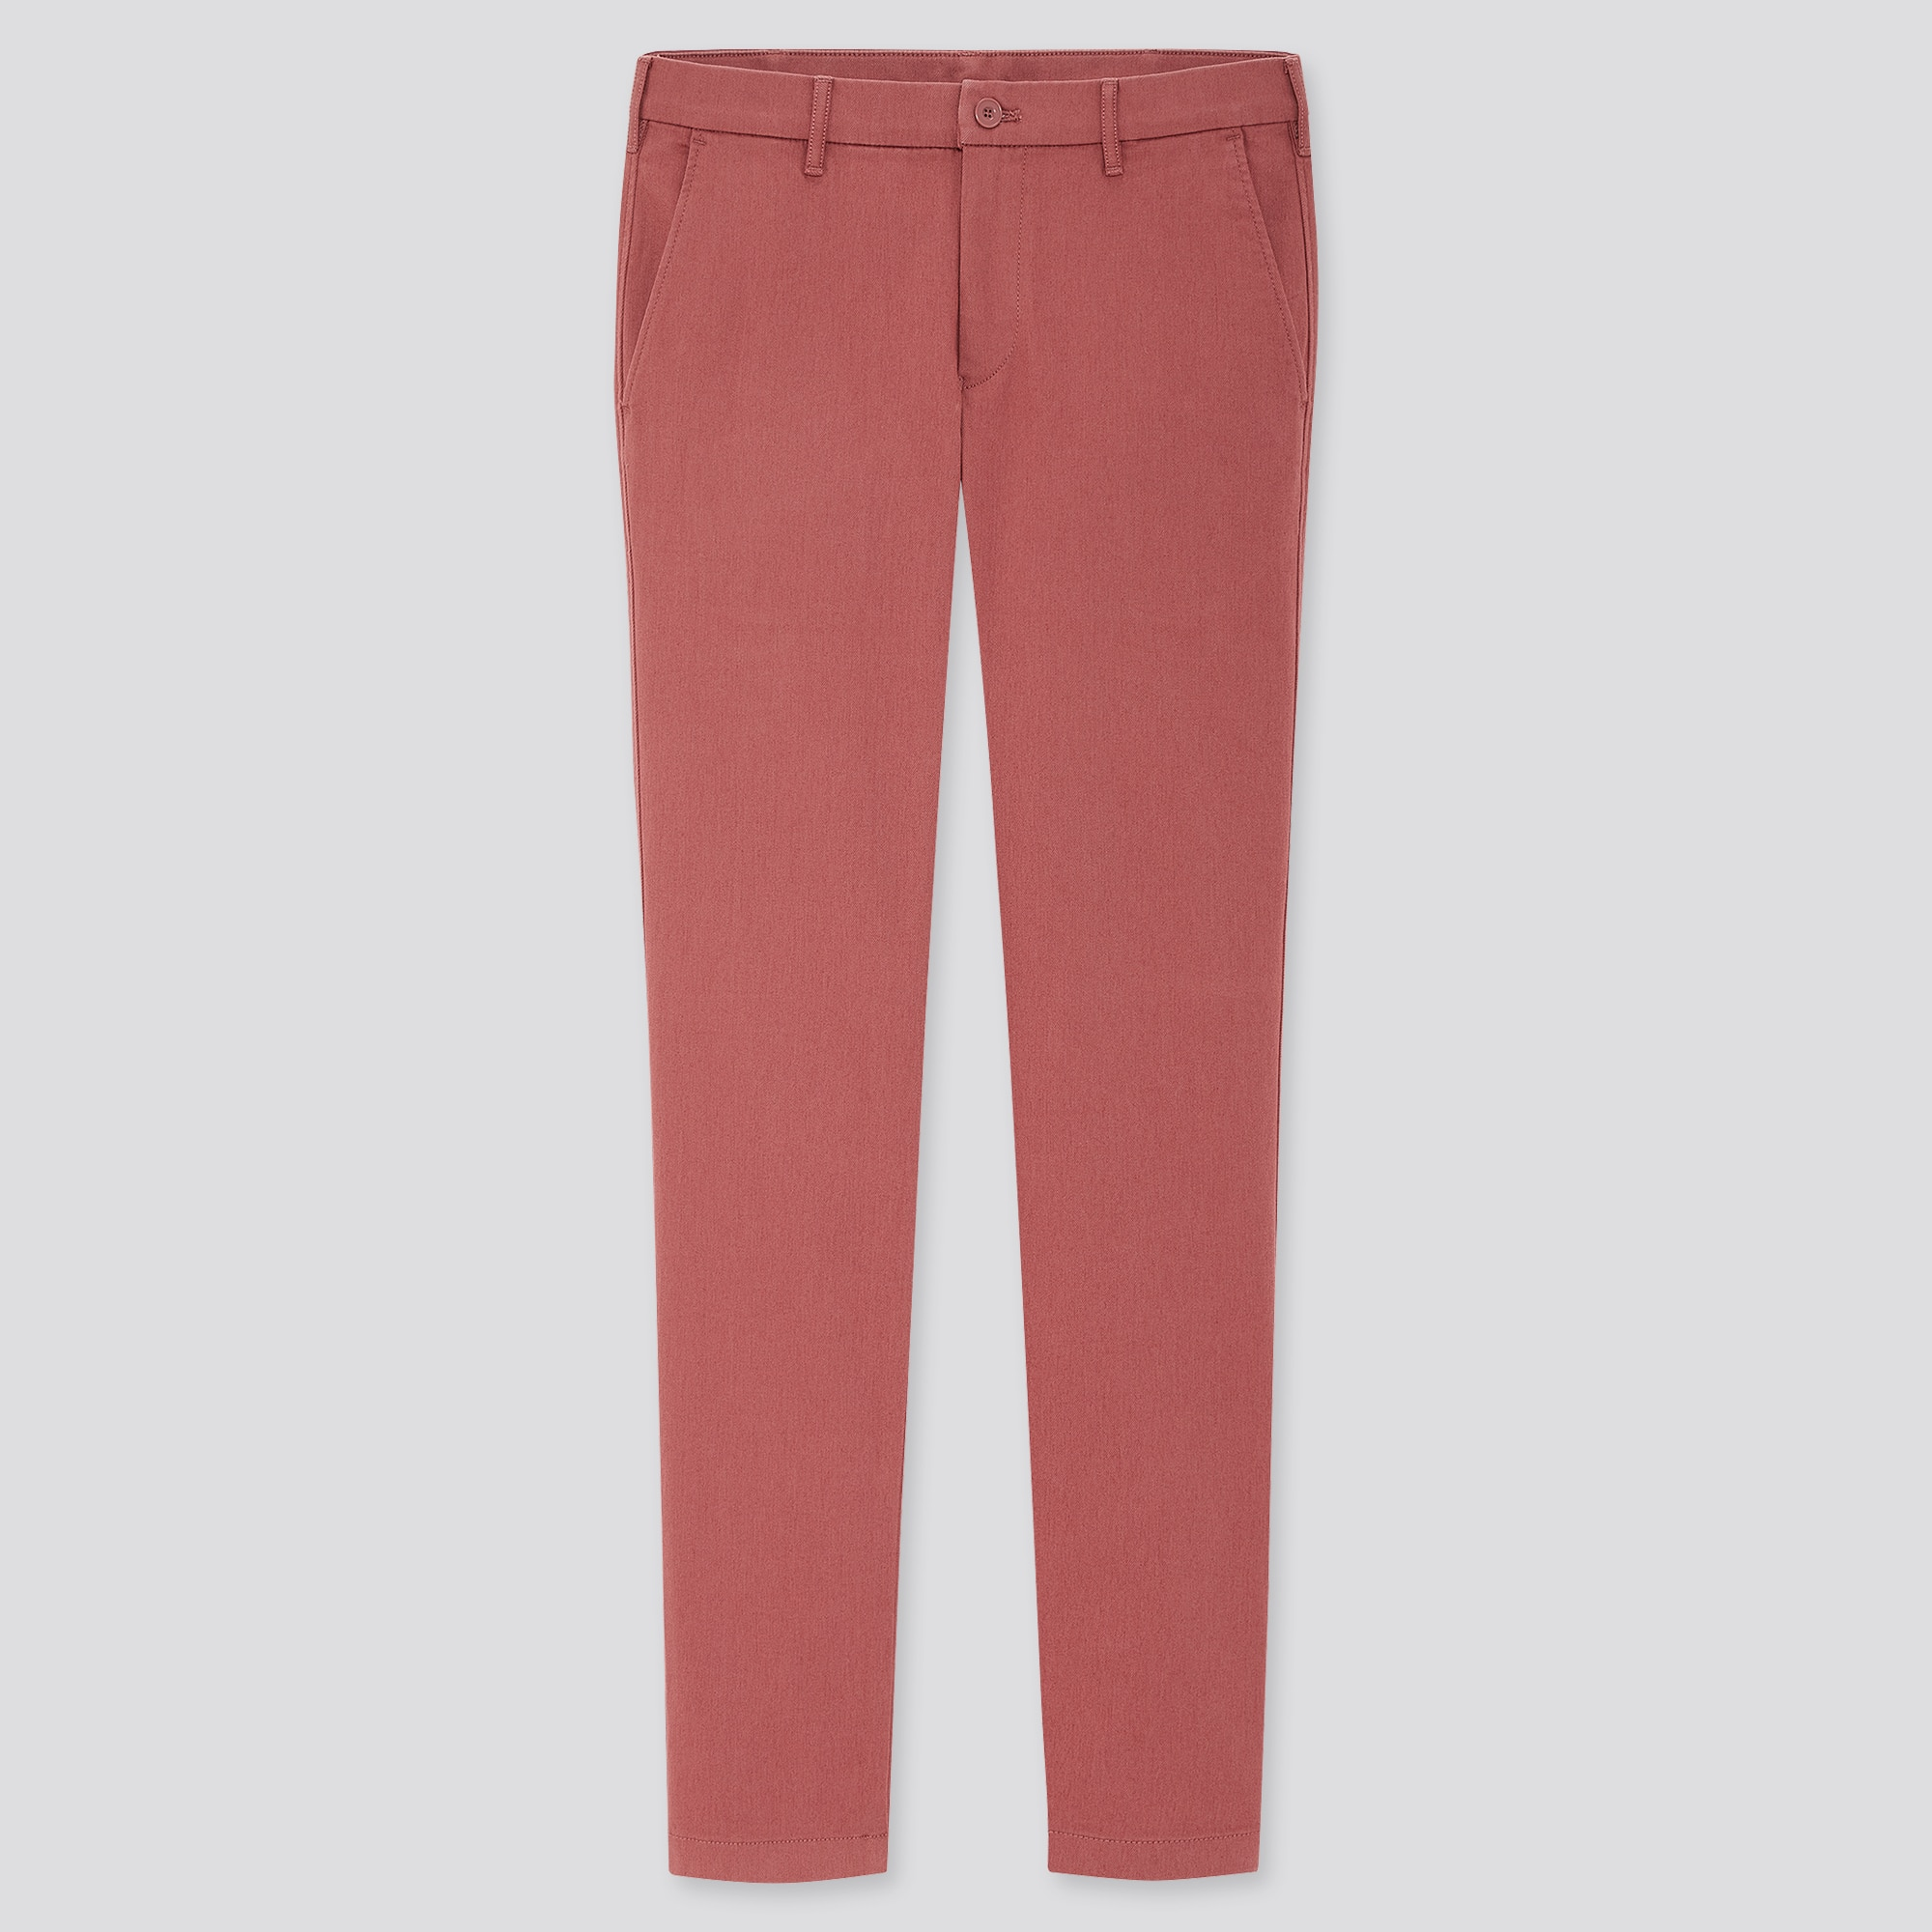 Mens Chino Trousers Pants Cotton Slim Fit Stretch Casual New Ex Store Mens